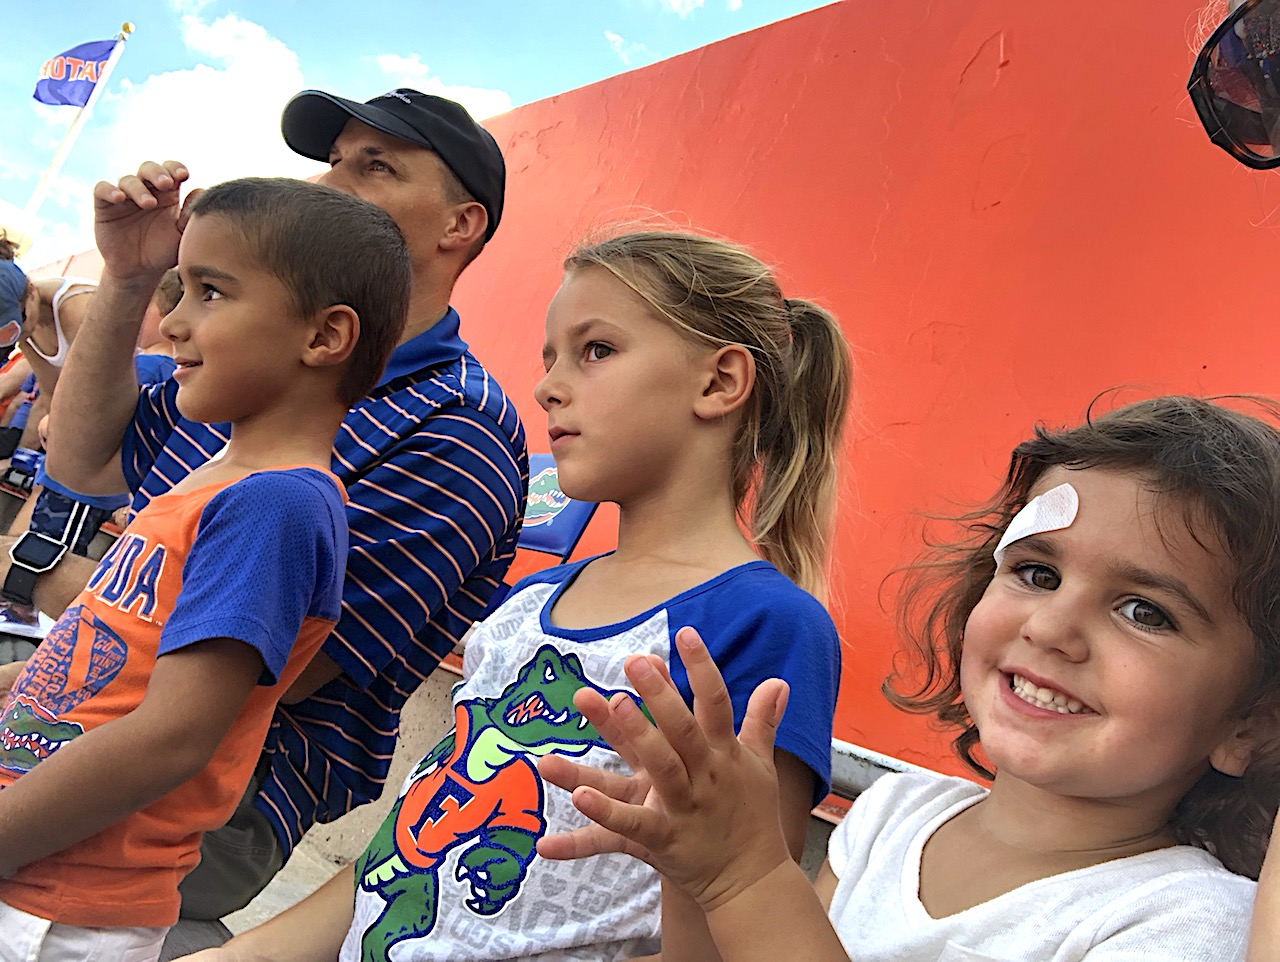 Family at UF Sports Event - 2-day itinerary for families in Gainesville, FL #gainesville #florida #tourofflorida #alachuacounty #gainesvilleFL #universityofflorida #UF #gogators #Gainesvillewithkids #gainesvilleitinerary